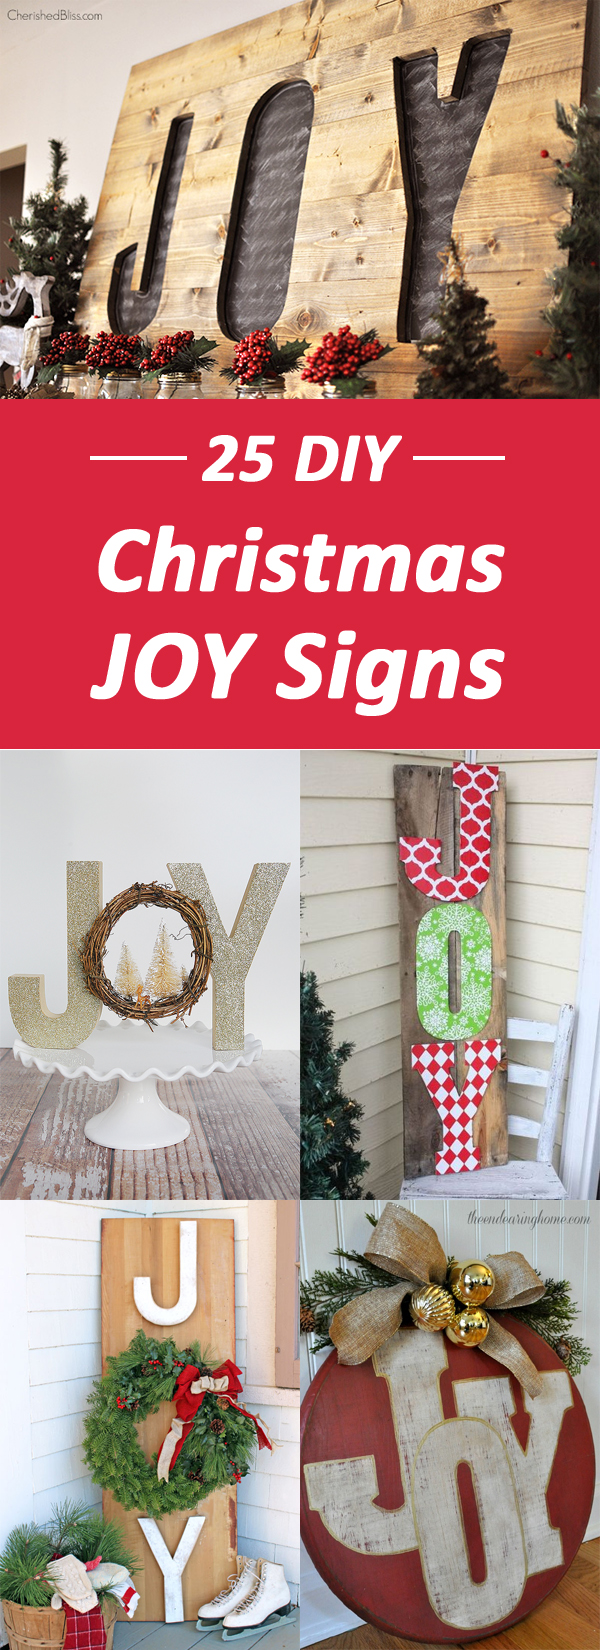 DIY Christmas JOY Signs